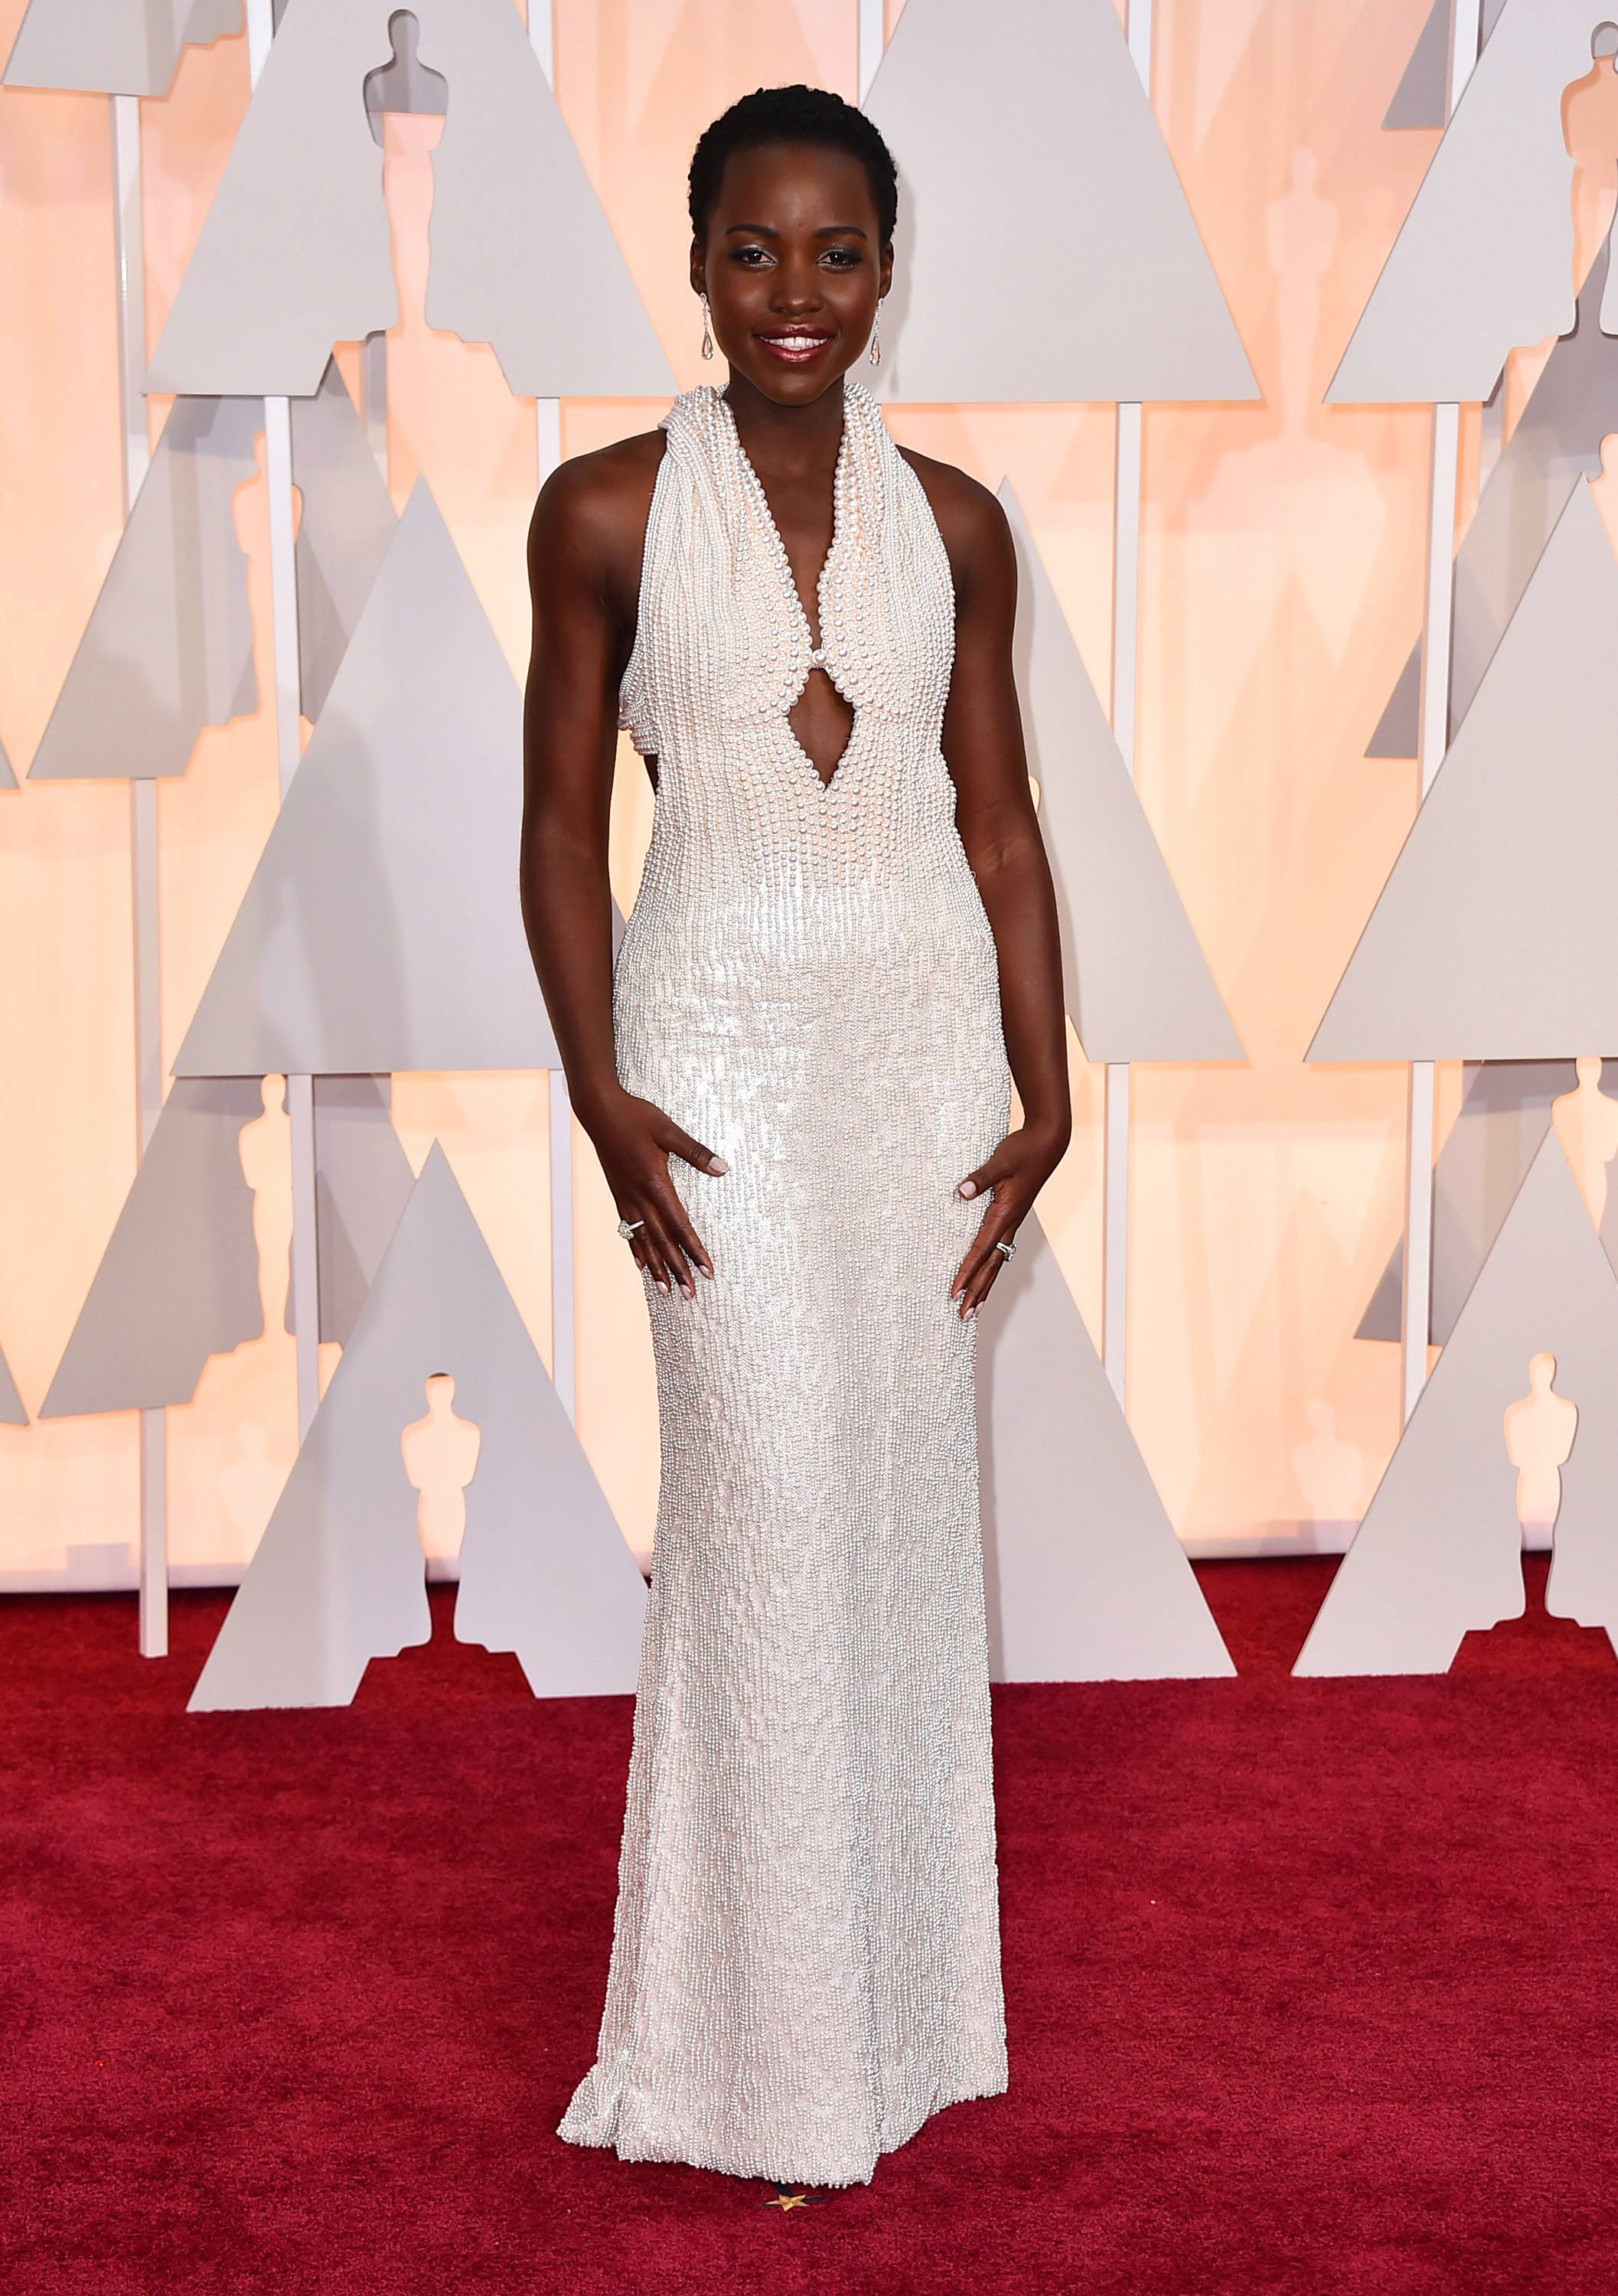 "Los Angeles sheriff's spokeswoman Nicole Nishida said on Friday that deputies have recovered a dress that ""greatly resembles"" the $150,000 custom Calvin Klein dress reported stolen from Lupita Nyong'o's hotel room earlier this week."